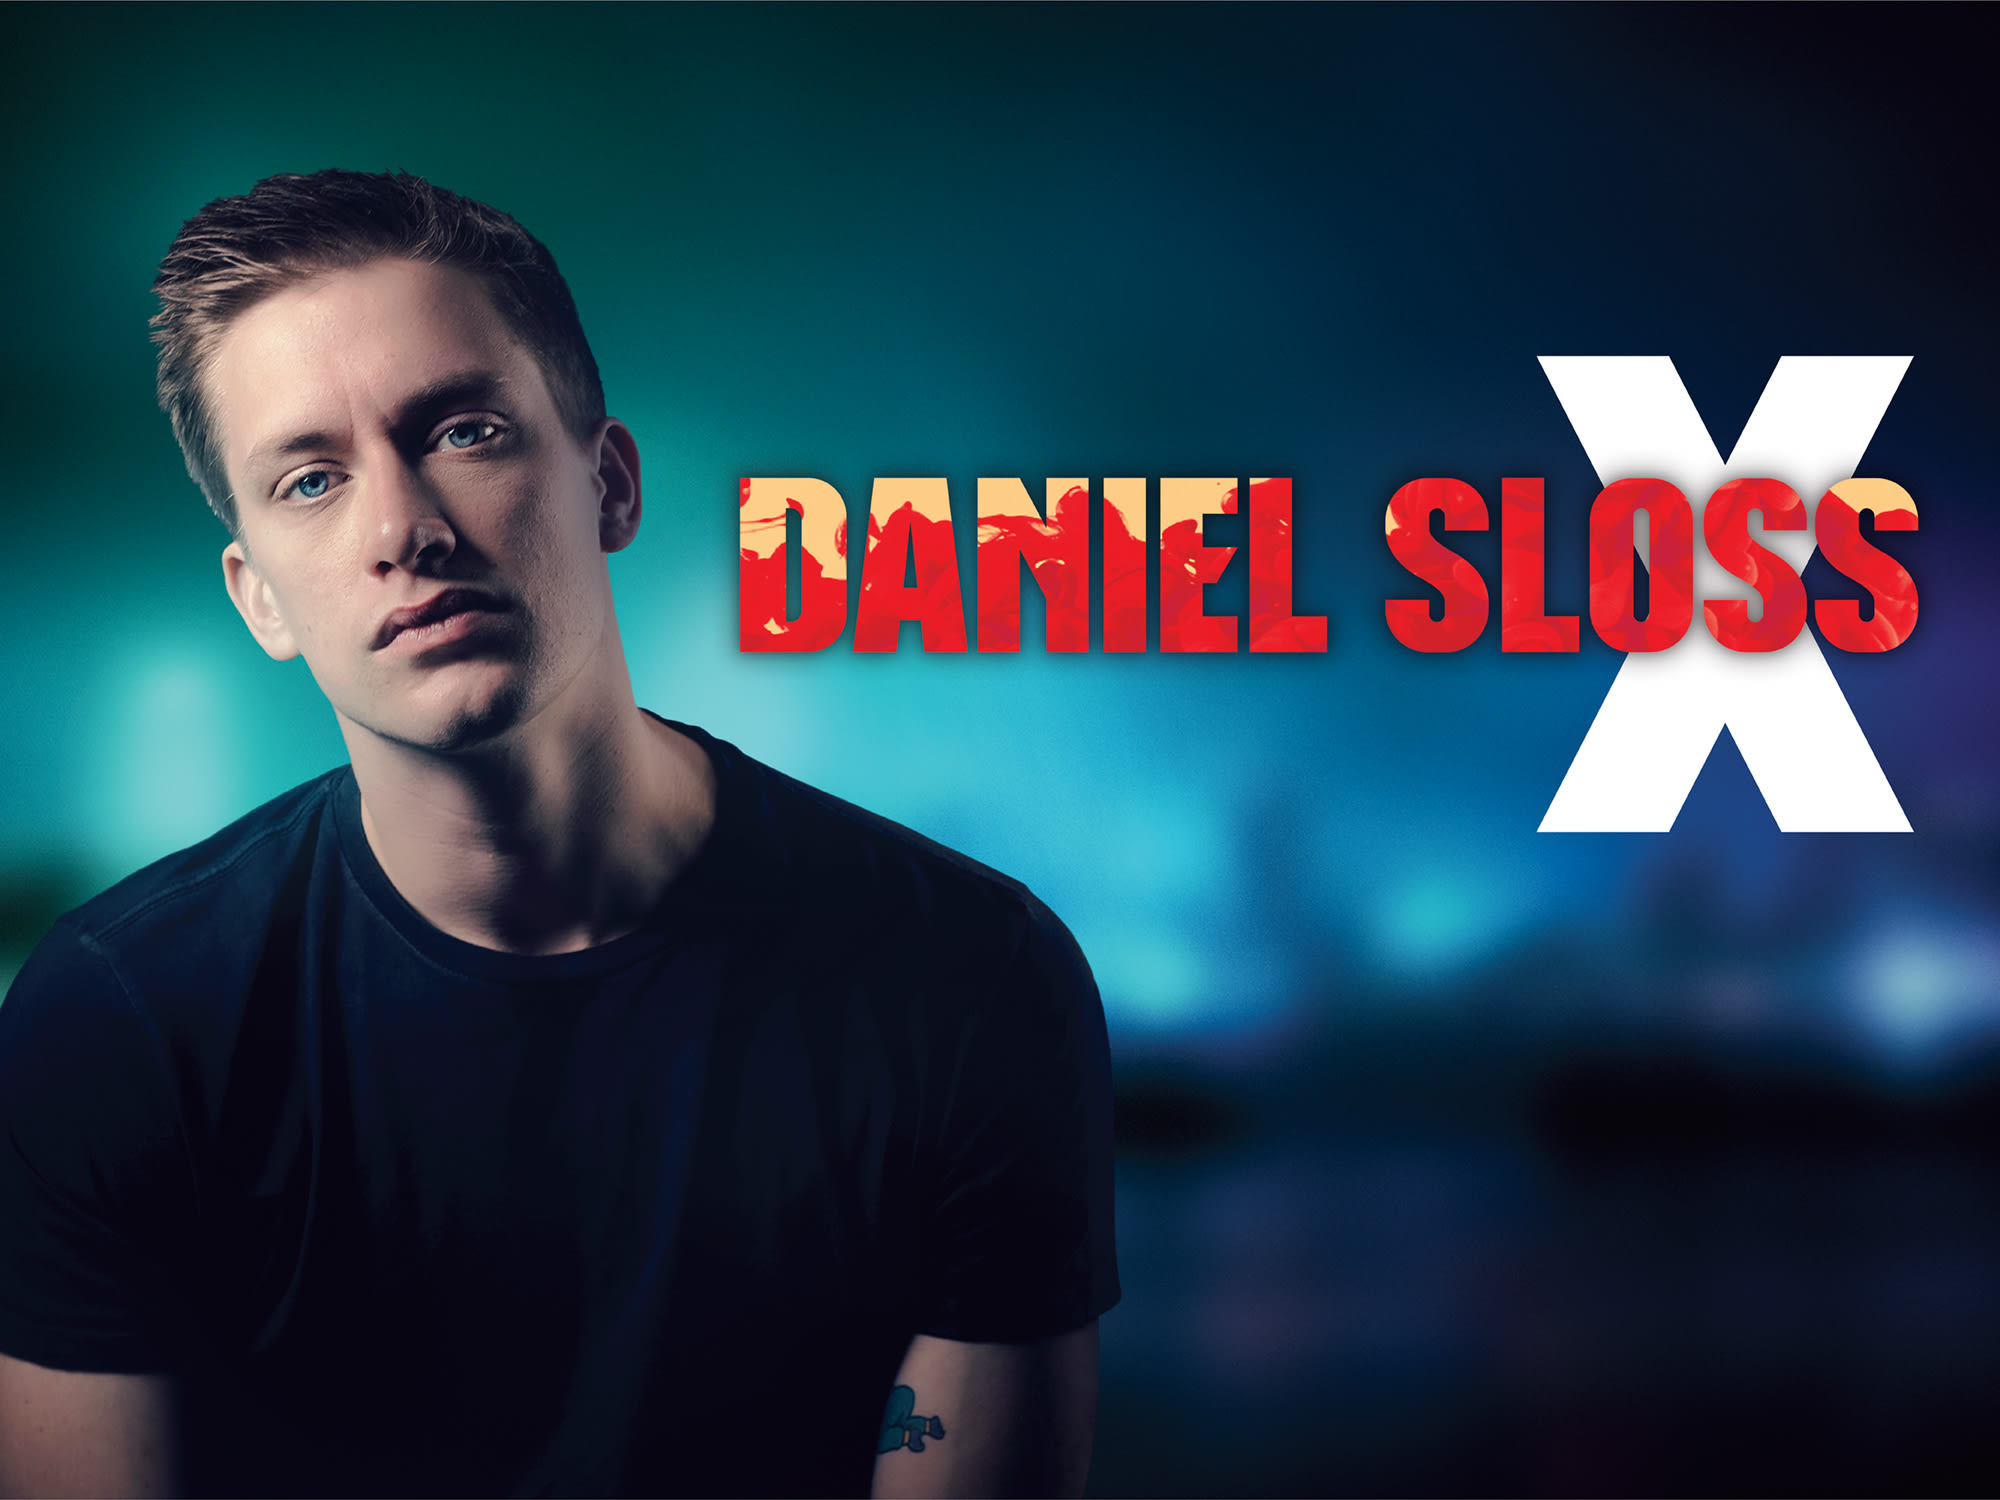 Daniel Sloss less text